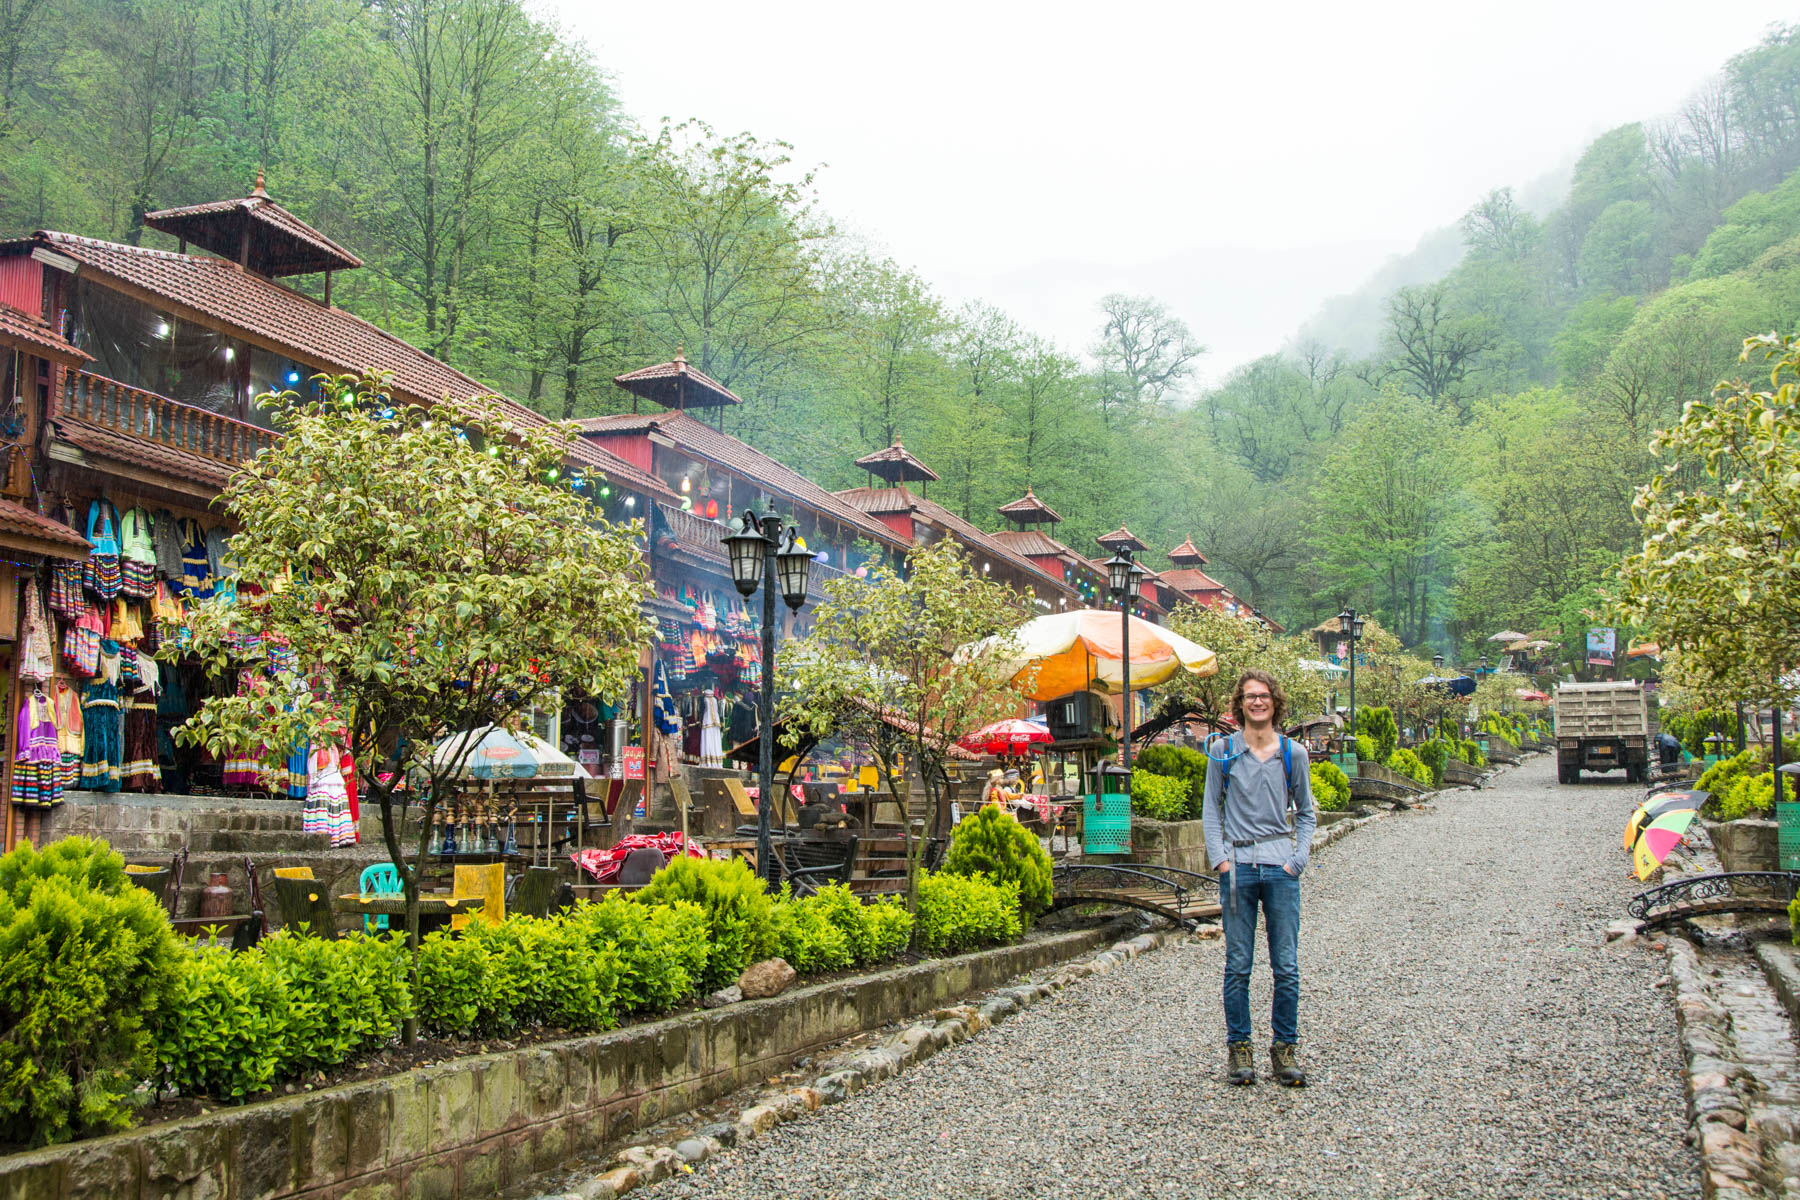 The entrance of the Qa'leh Rudkhan park in Iran